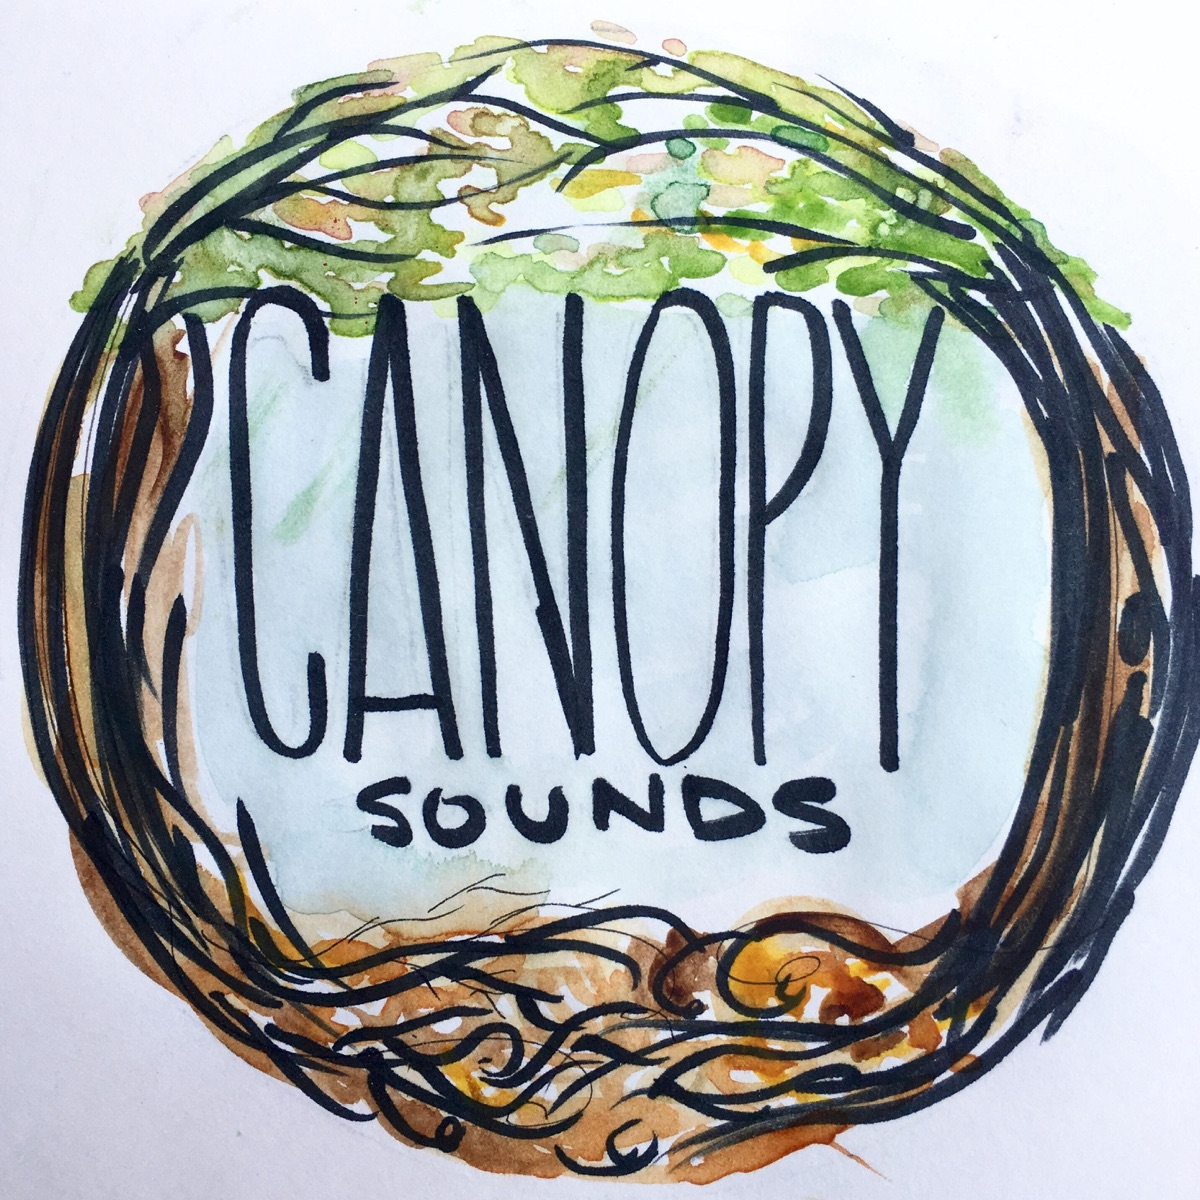 Canopy Sounds 73: Samihe